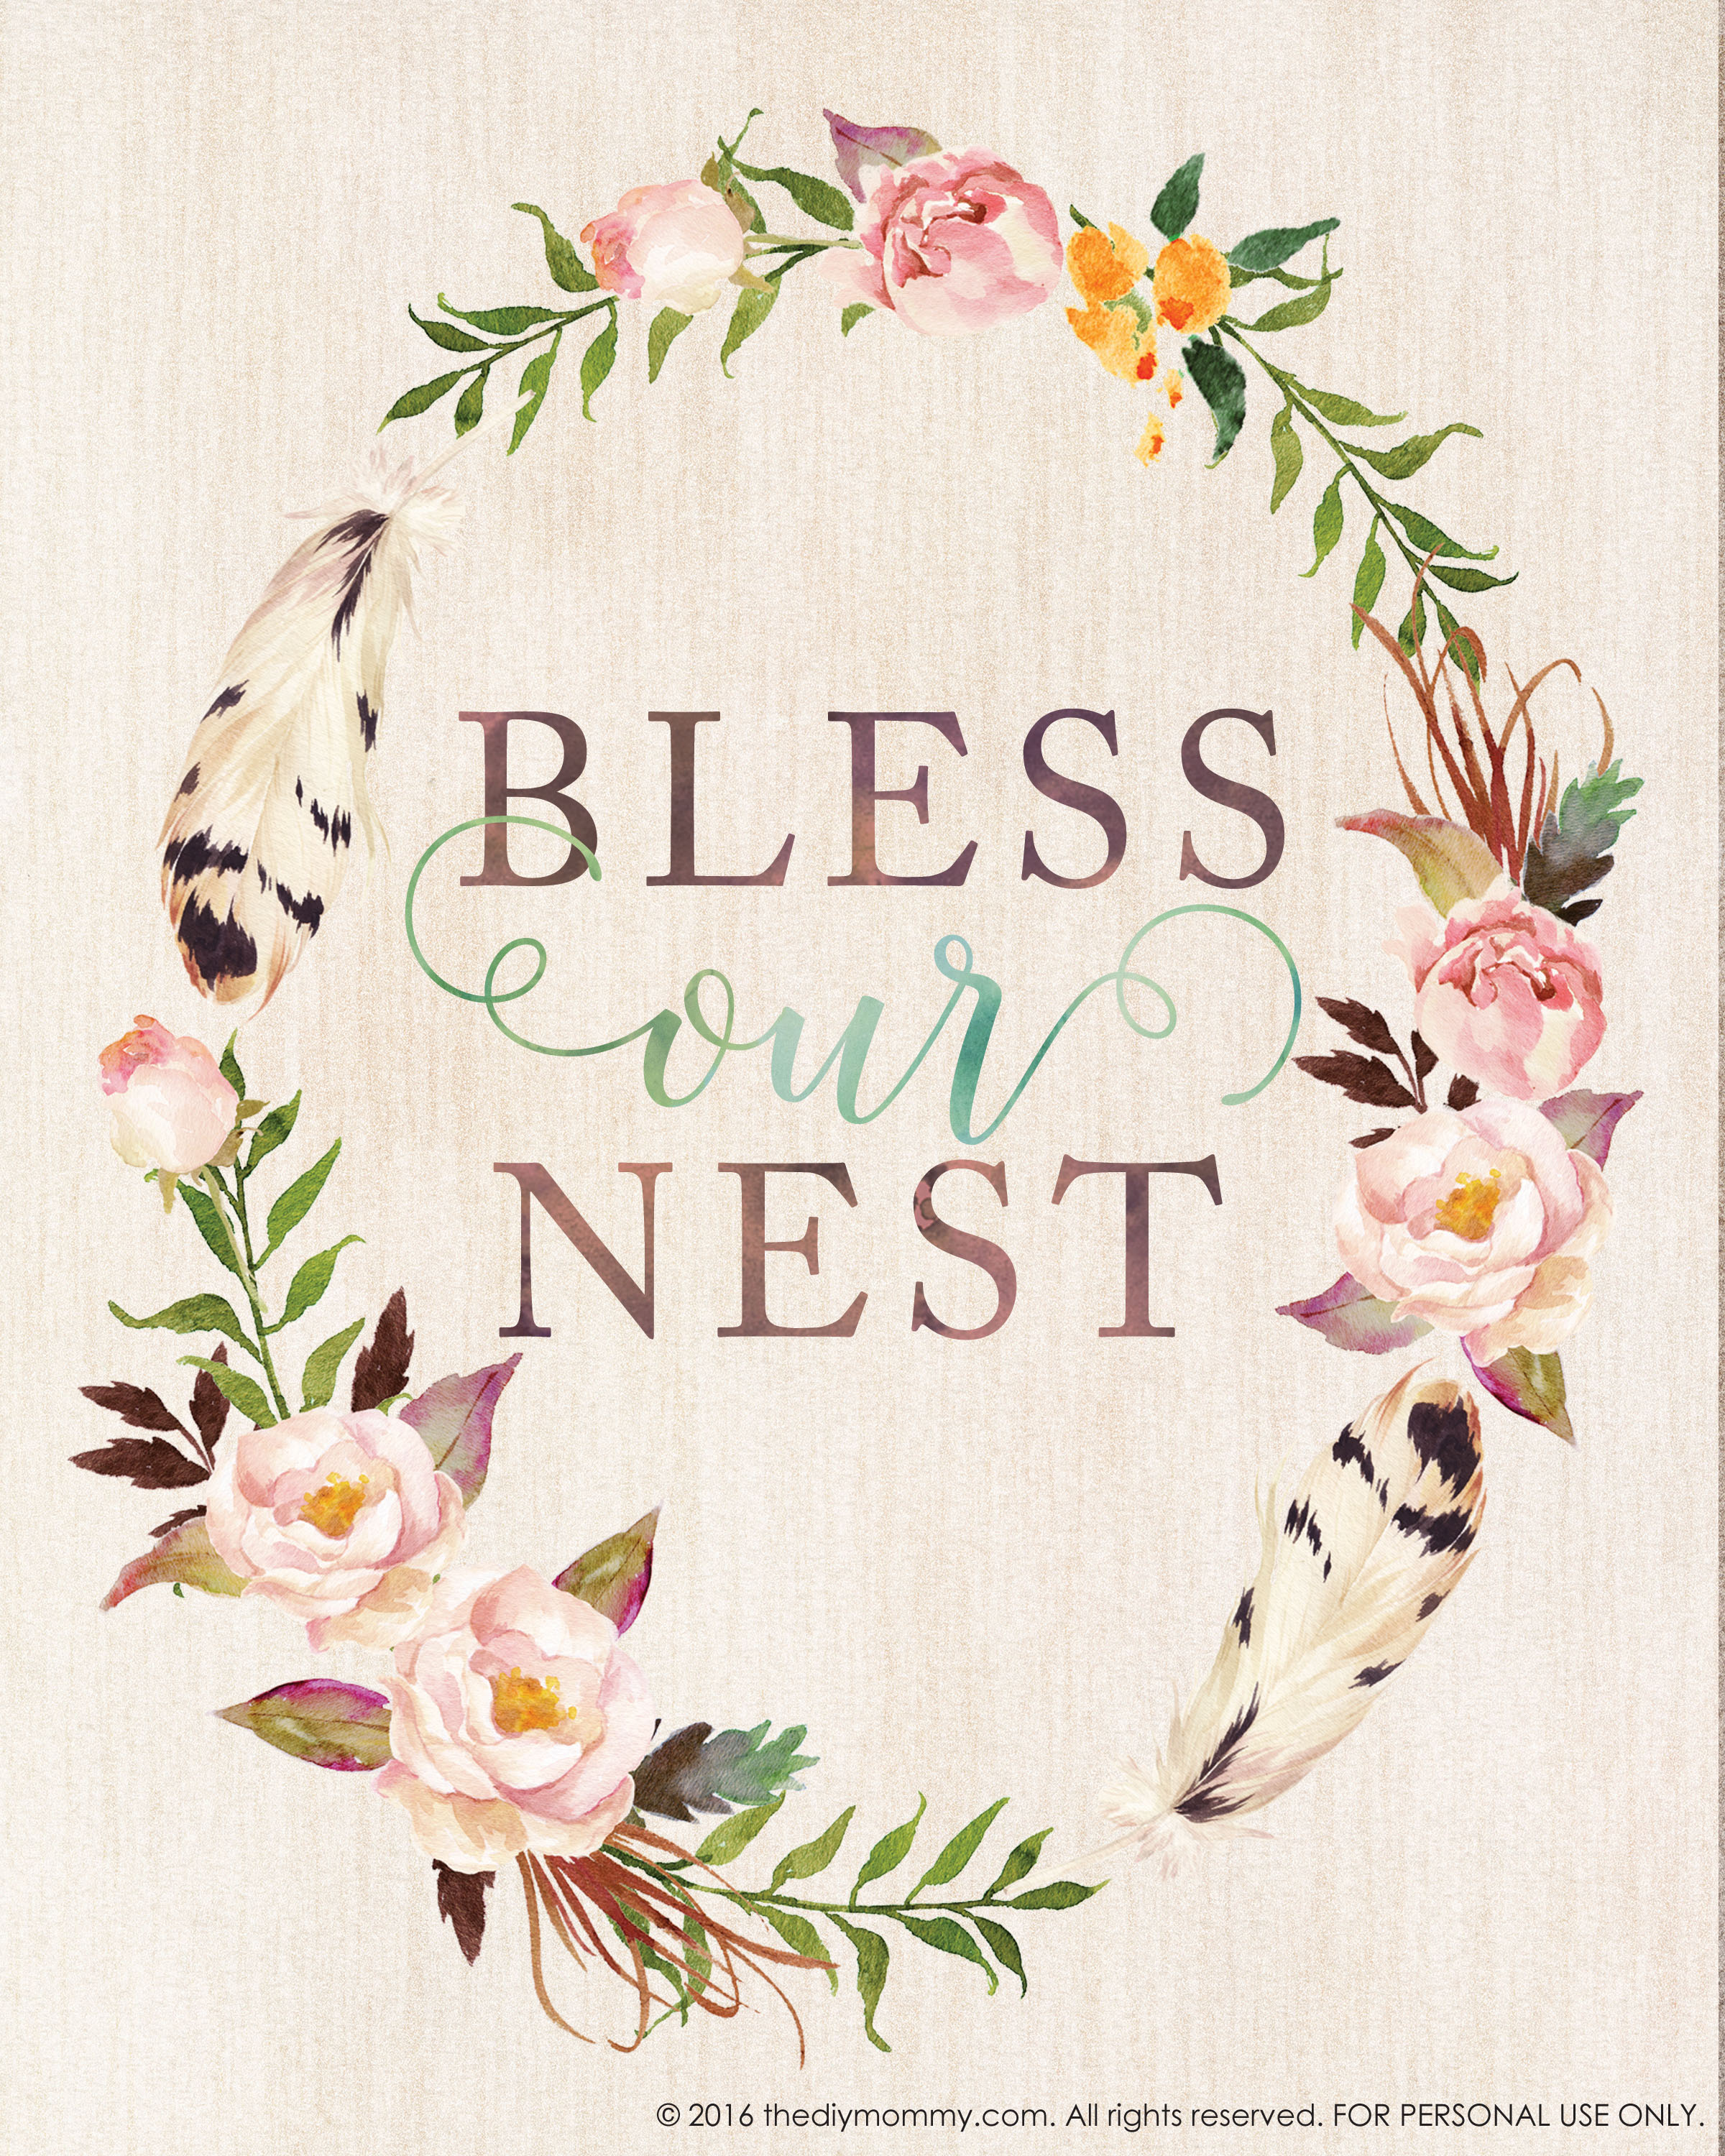 picture about Printable Artwork identified as Bless Our Nest Free of charge Printable Watercolor Art for Spring